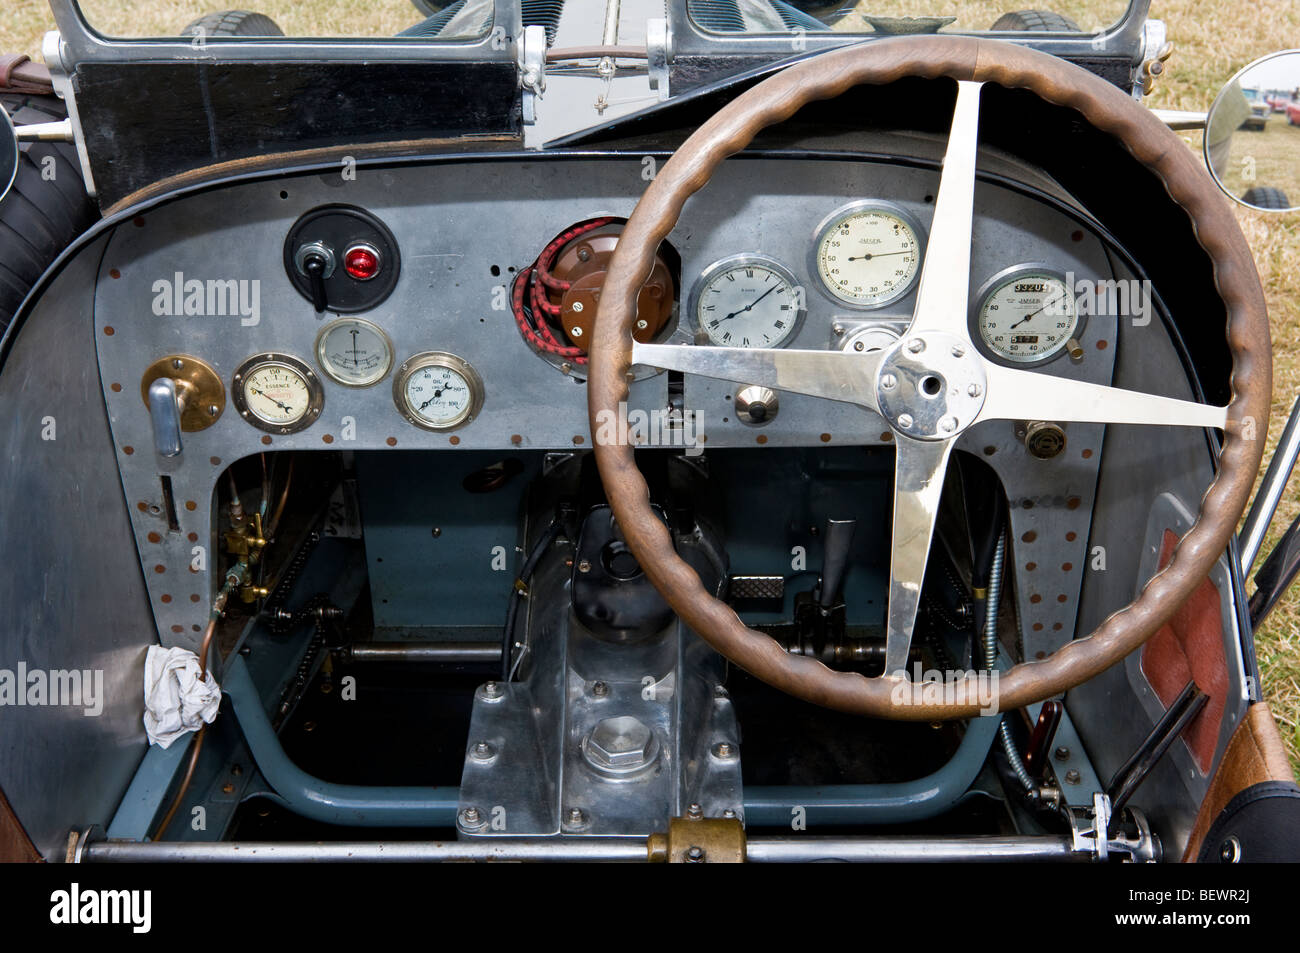 1930 39 s bugatti interior showing gauges controls and steering wheel stock photo 26382458 alamy. Black Bedroom Furniture Sets. Home Design Ideas